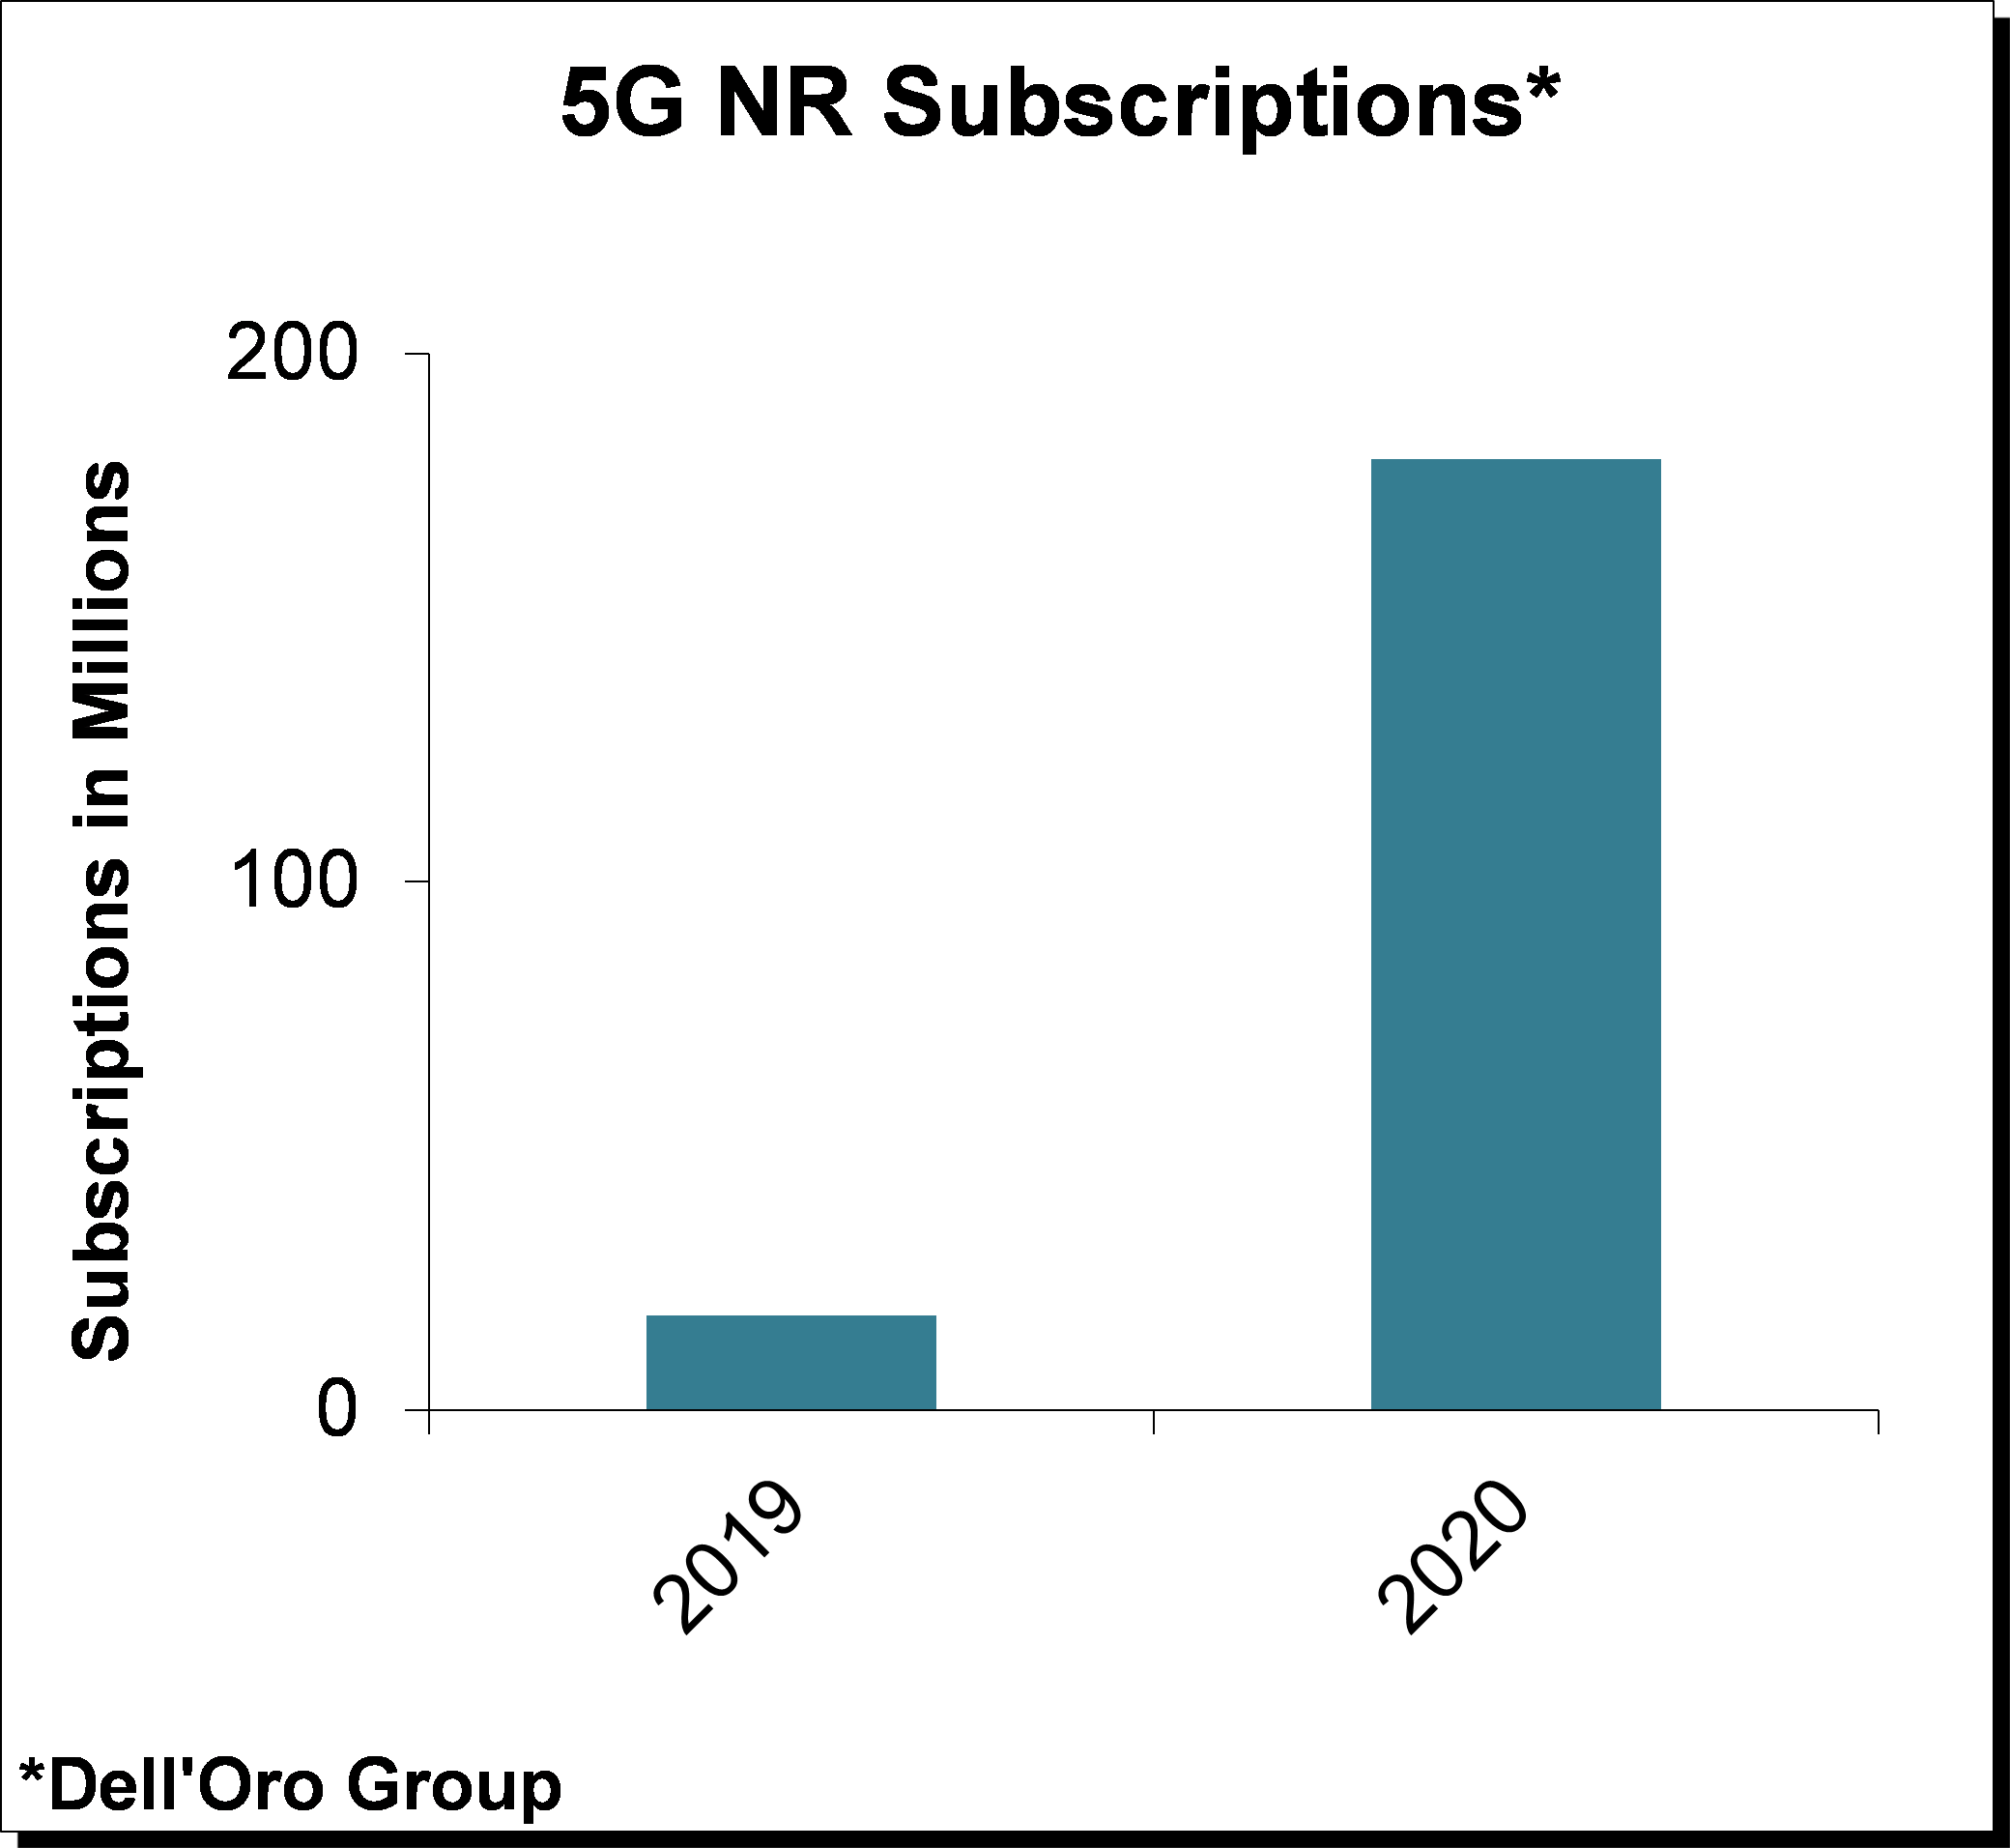 Dell'Oro 5G NR Subscriptions Chart